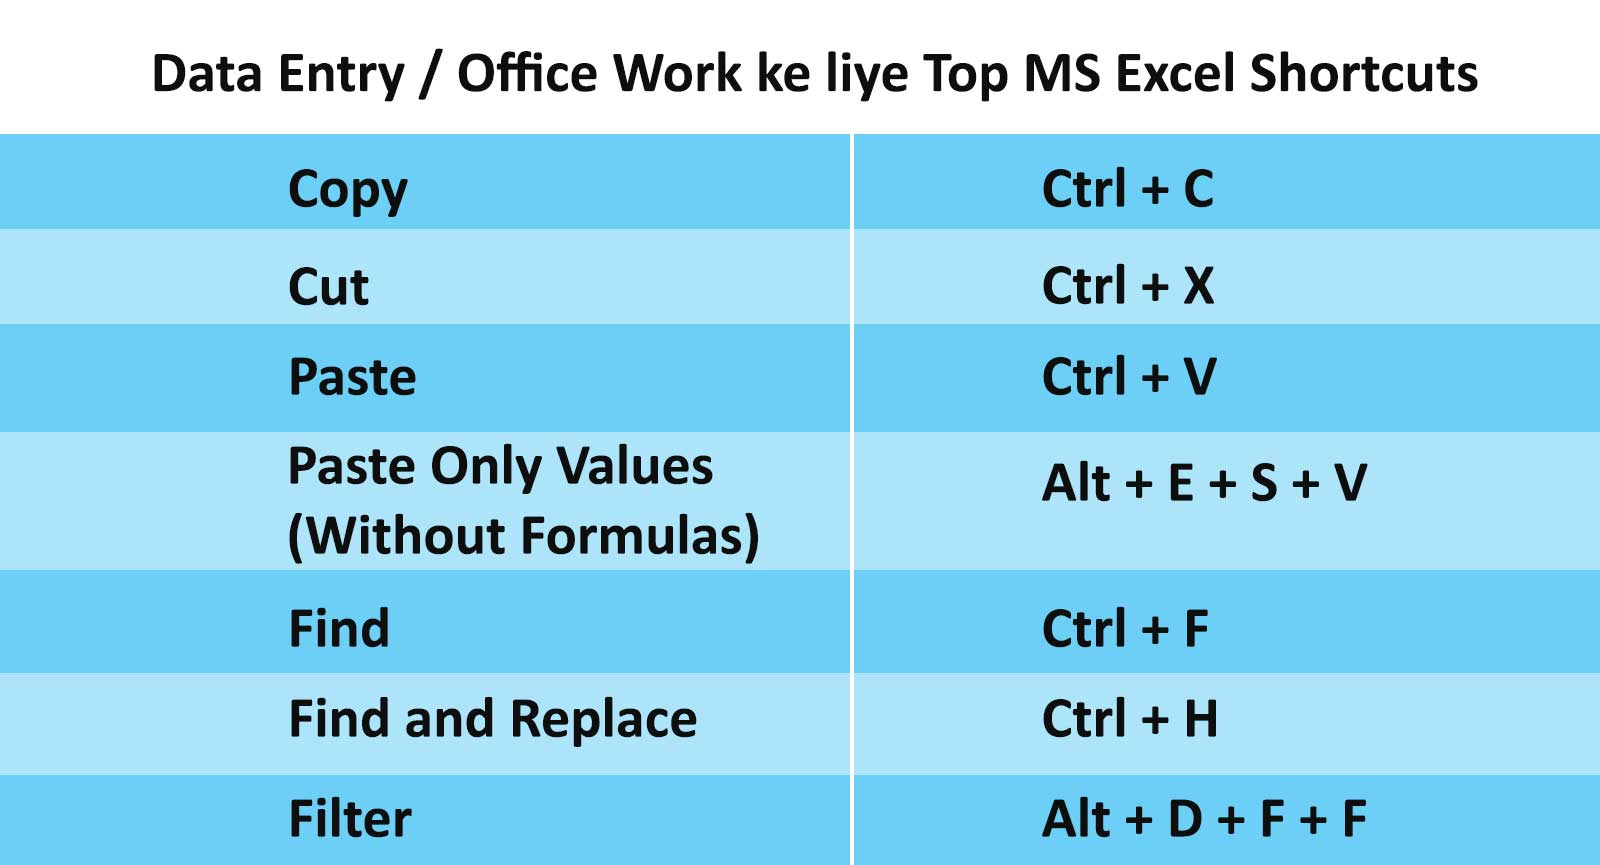 MS Excel Shortcuts